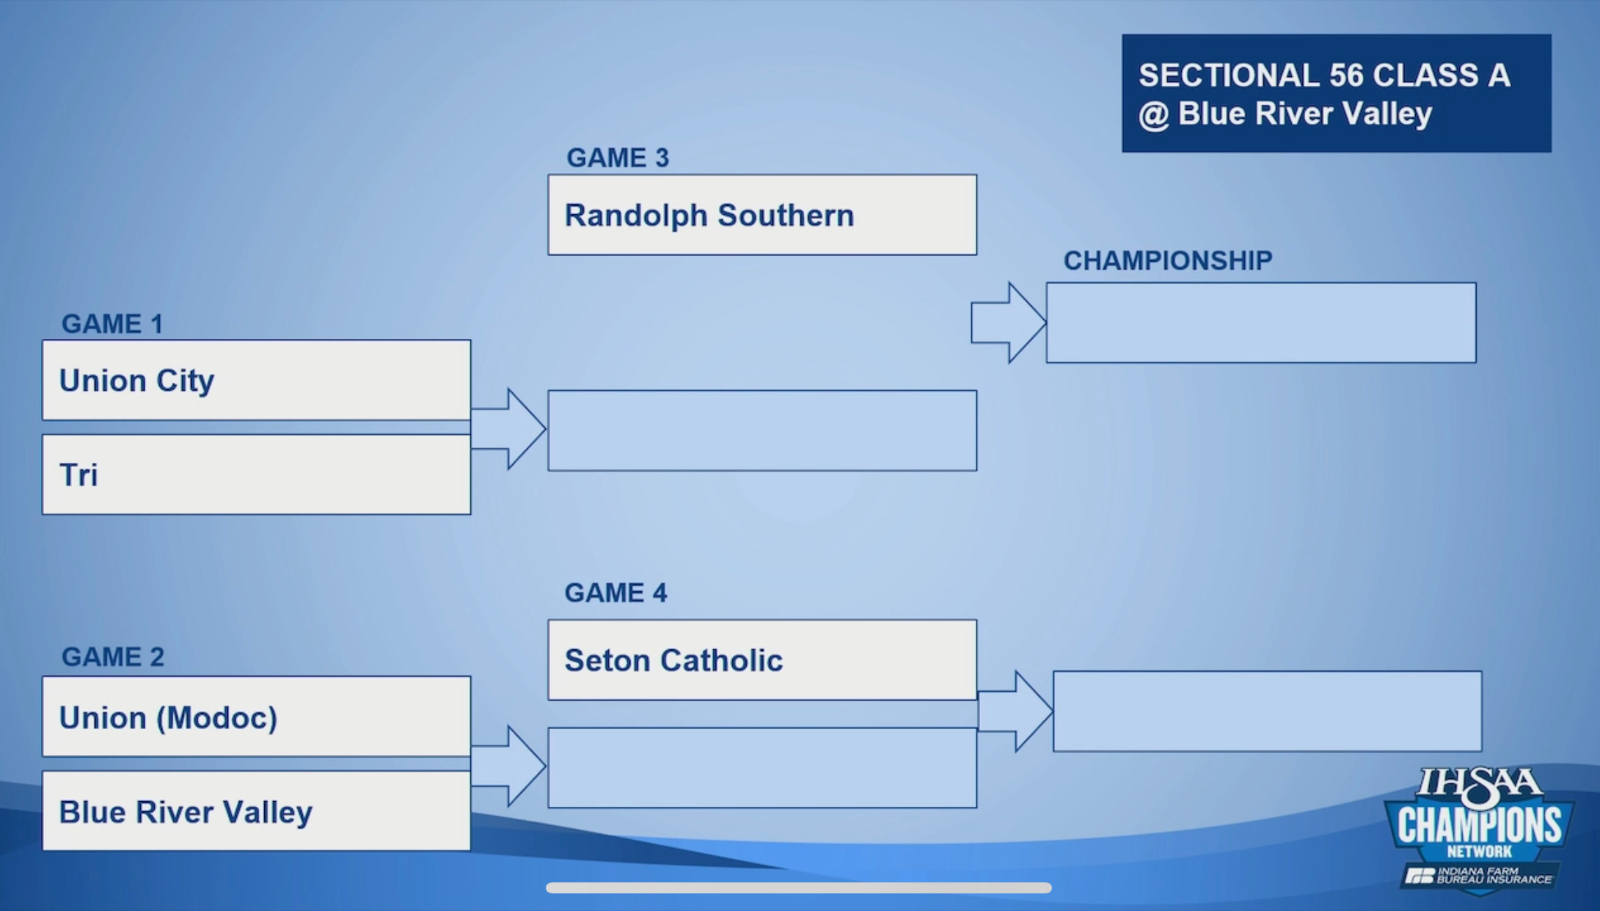 BOYS BASKETBALL SECTIONAL TICKETS ON SALE NOW